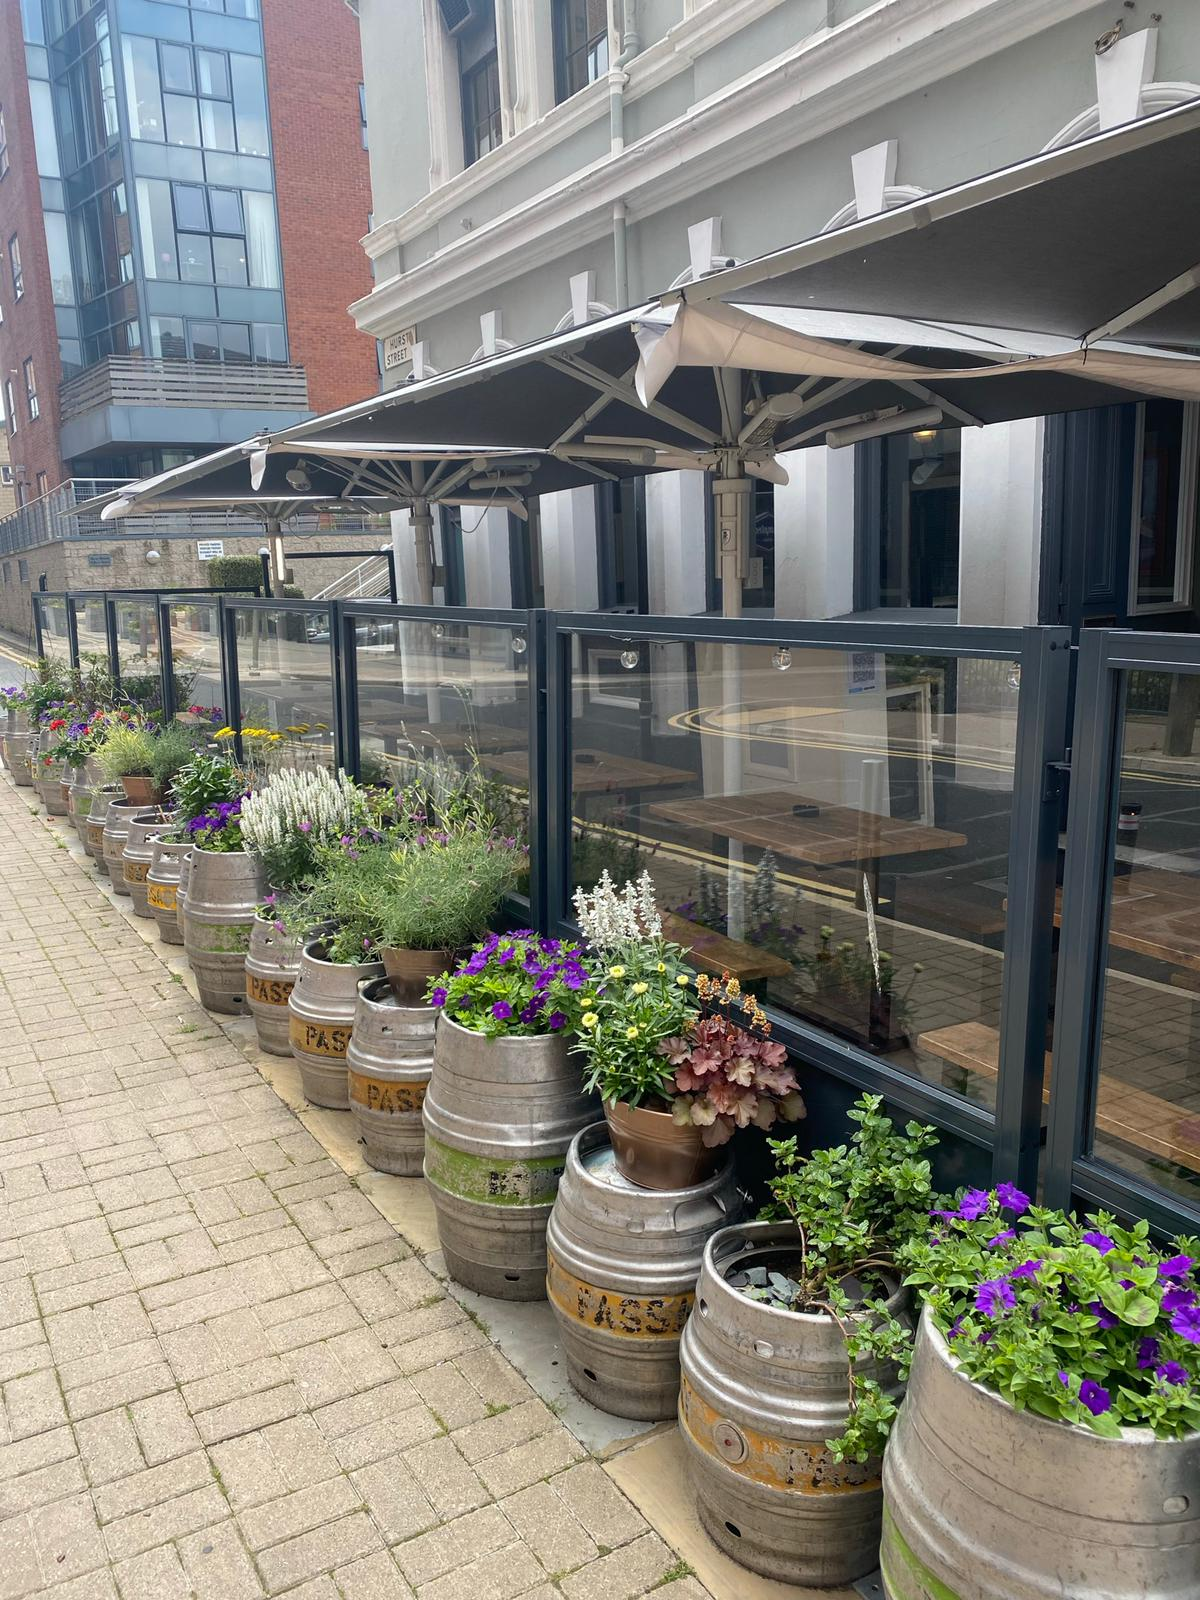 <p>Barriers & Screens – Gibli Terrace Screens – Bella Parasol – Outdoor Heaters – Baltic Fleet</p> <p></p> <p>Transformed using Gibli Terrace Screens & Bella Parasol with outstanding outdoor heaters</p> <p></p> <p>Suitable for Pub Beer Garden Patio as well as other hospitality alfresco areas including Fish & Chip Restaurant Pavement Terraces</p> <p></p> <p>Frames and Glass are available in a variety of colours and options to include corporate branding or sponsor branding are also available.</p> <p></p> <p>Ideal solution to section off alfresco dining areas to allow for 2m social distancing measures, whilst encouraging customer to visit and enjoy what they have always liked to do, dine and socialise</p> <p></p> <p>Includes Parasols & outdoor Heaters to keep people dry & warm whatever the weather</p>